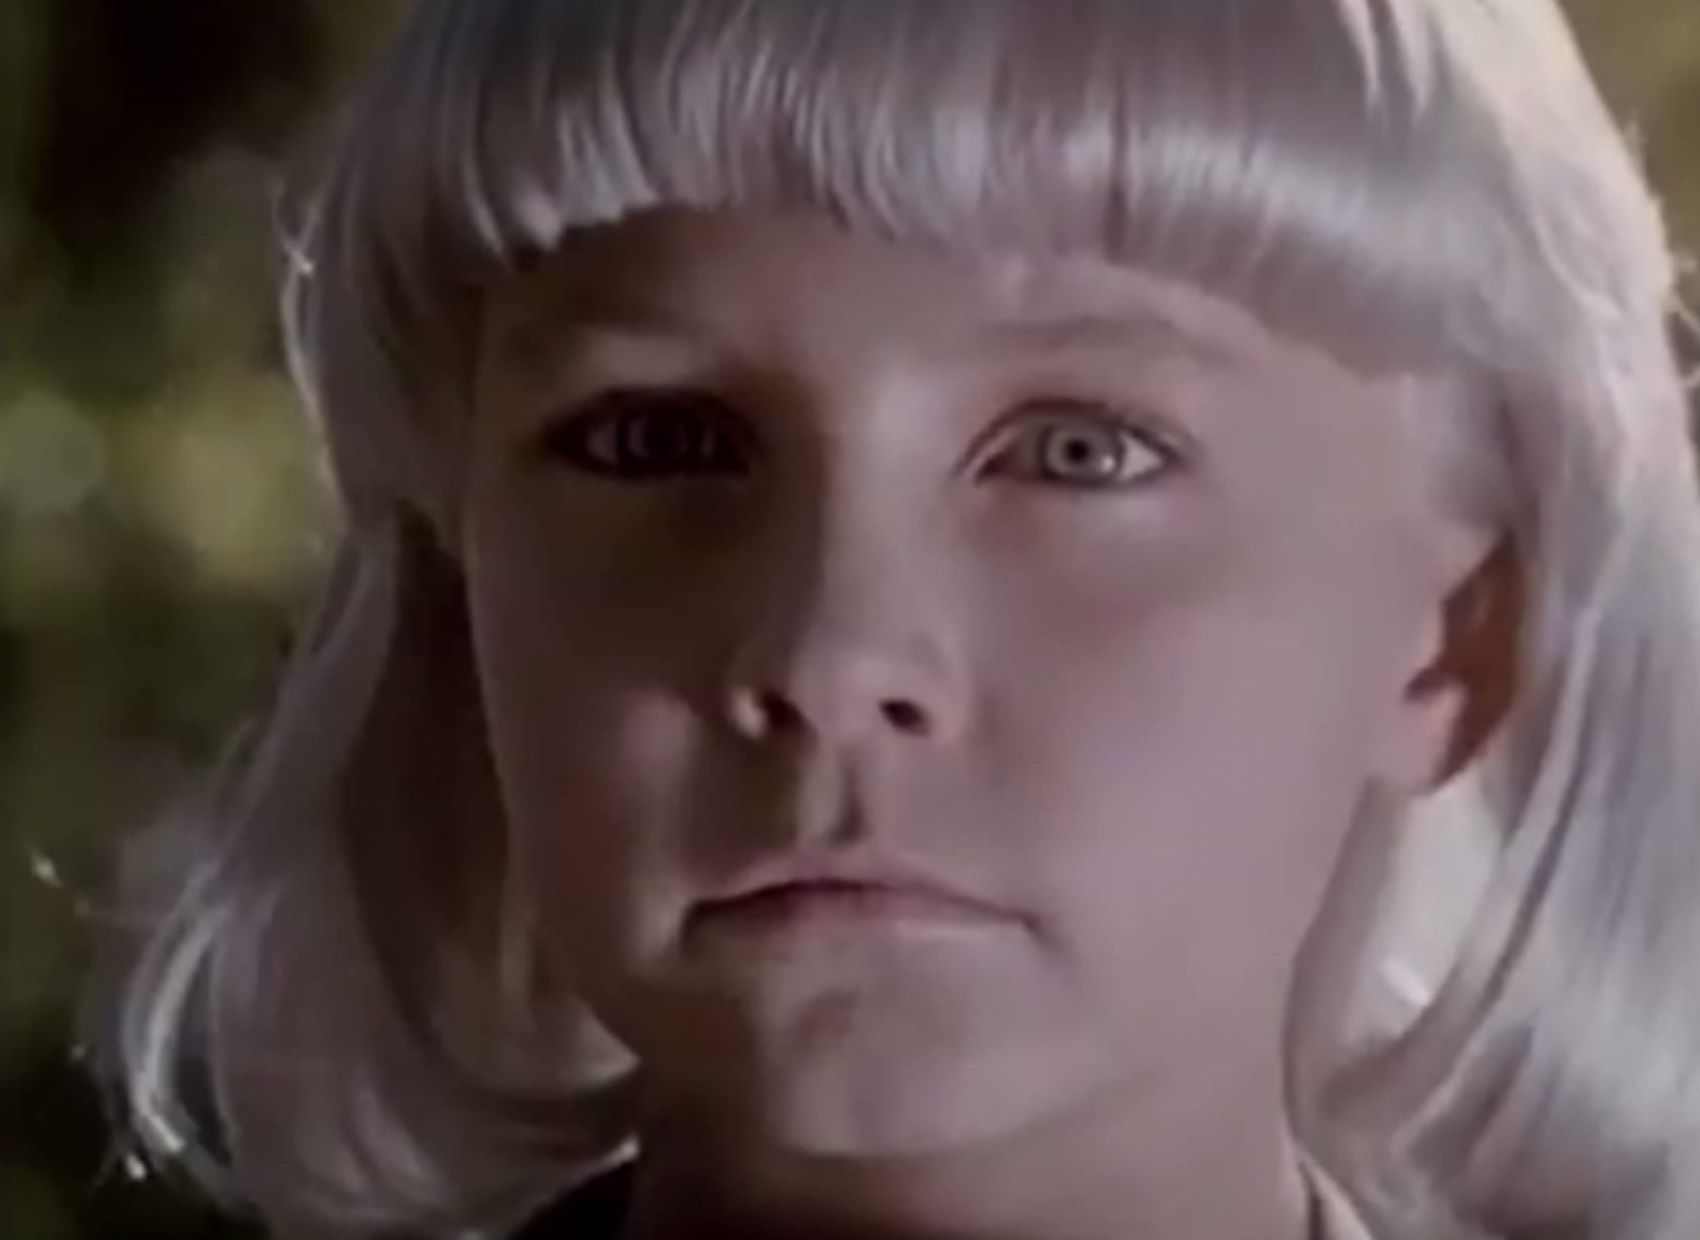 Village of the Damned 1995 by John Carpenter ... white blonde child